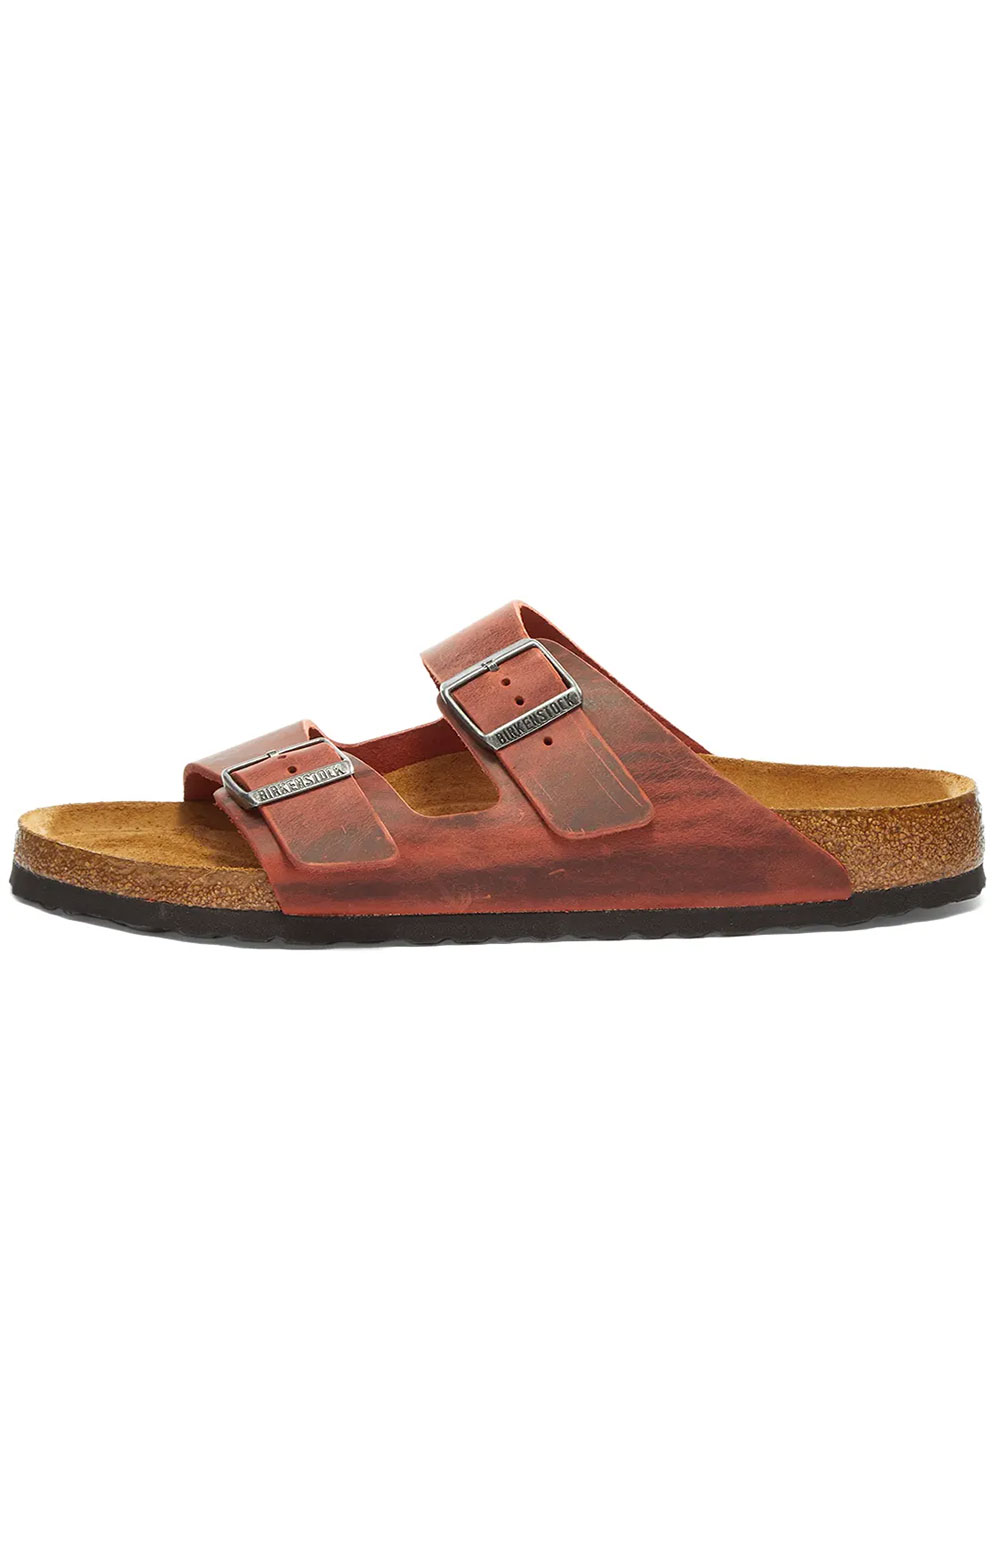 (1015544) Arizona Soft Footbed Sandals - Red Oil  3